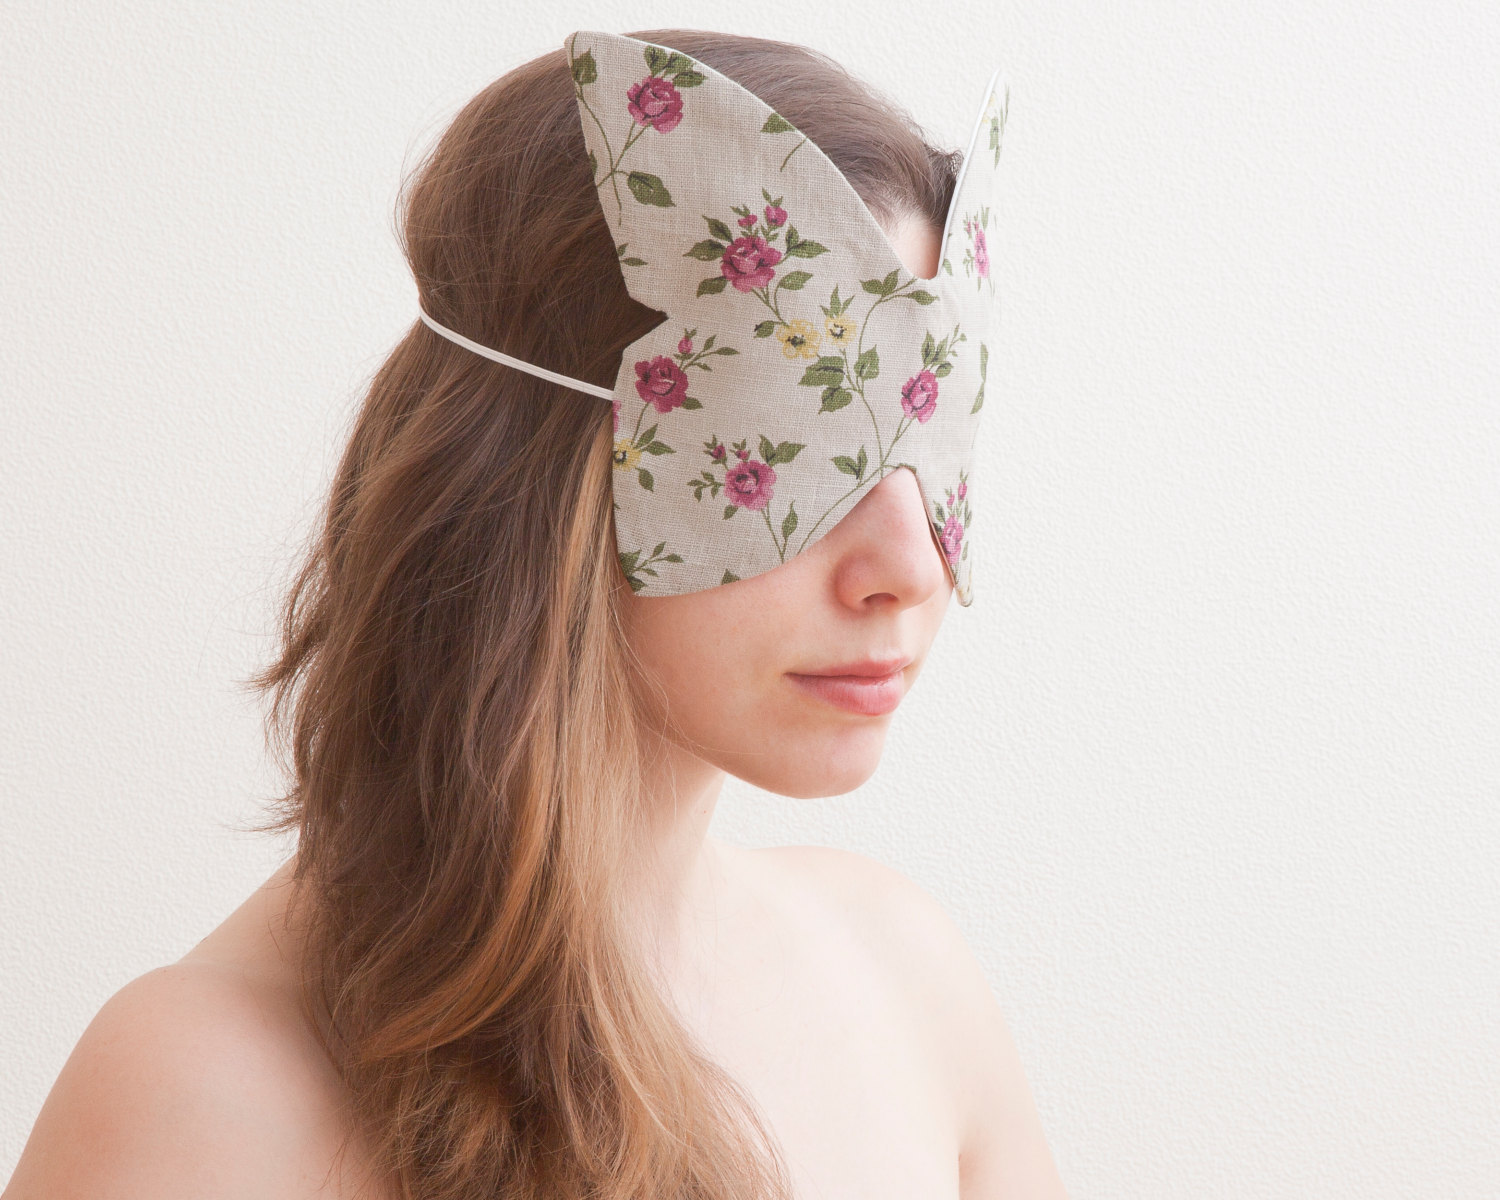 Butterfly Sleep Mask Slumber Party travel mask honeymoon gift Eye Sleep Mask